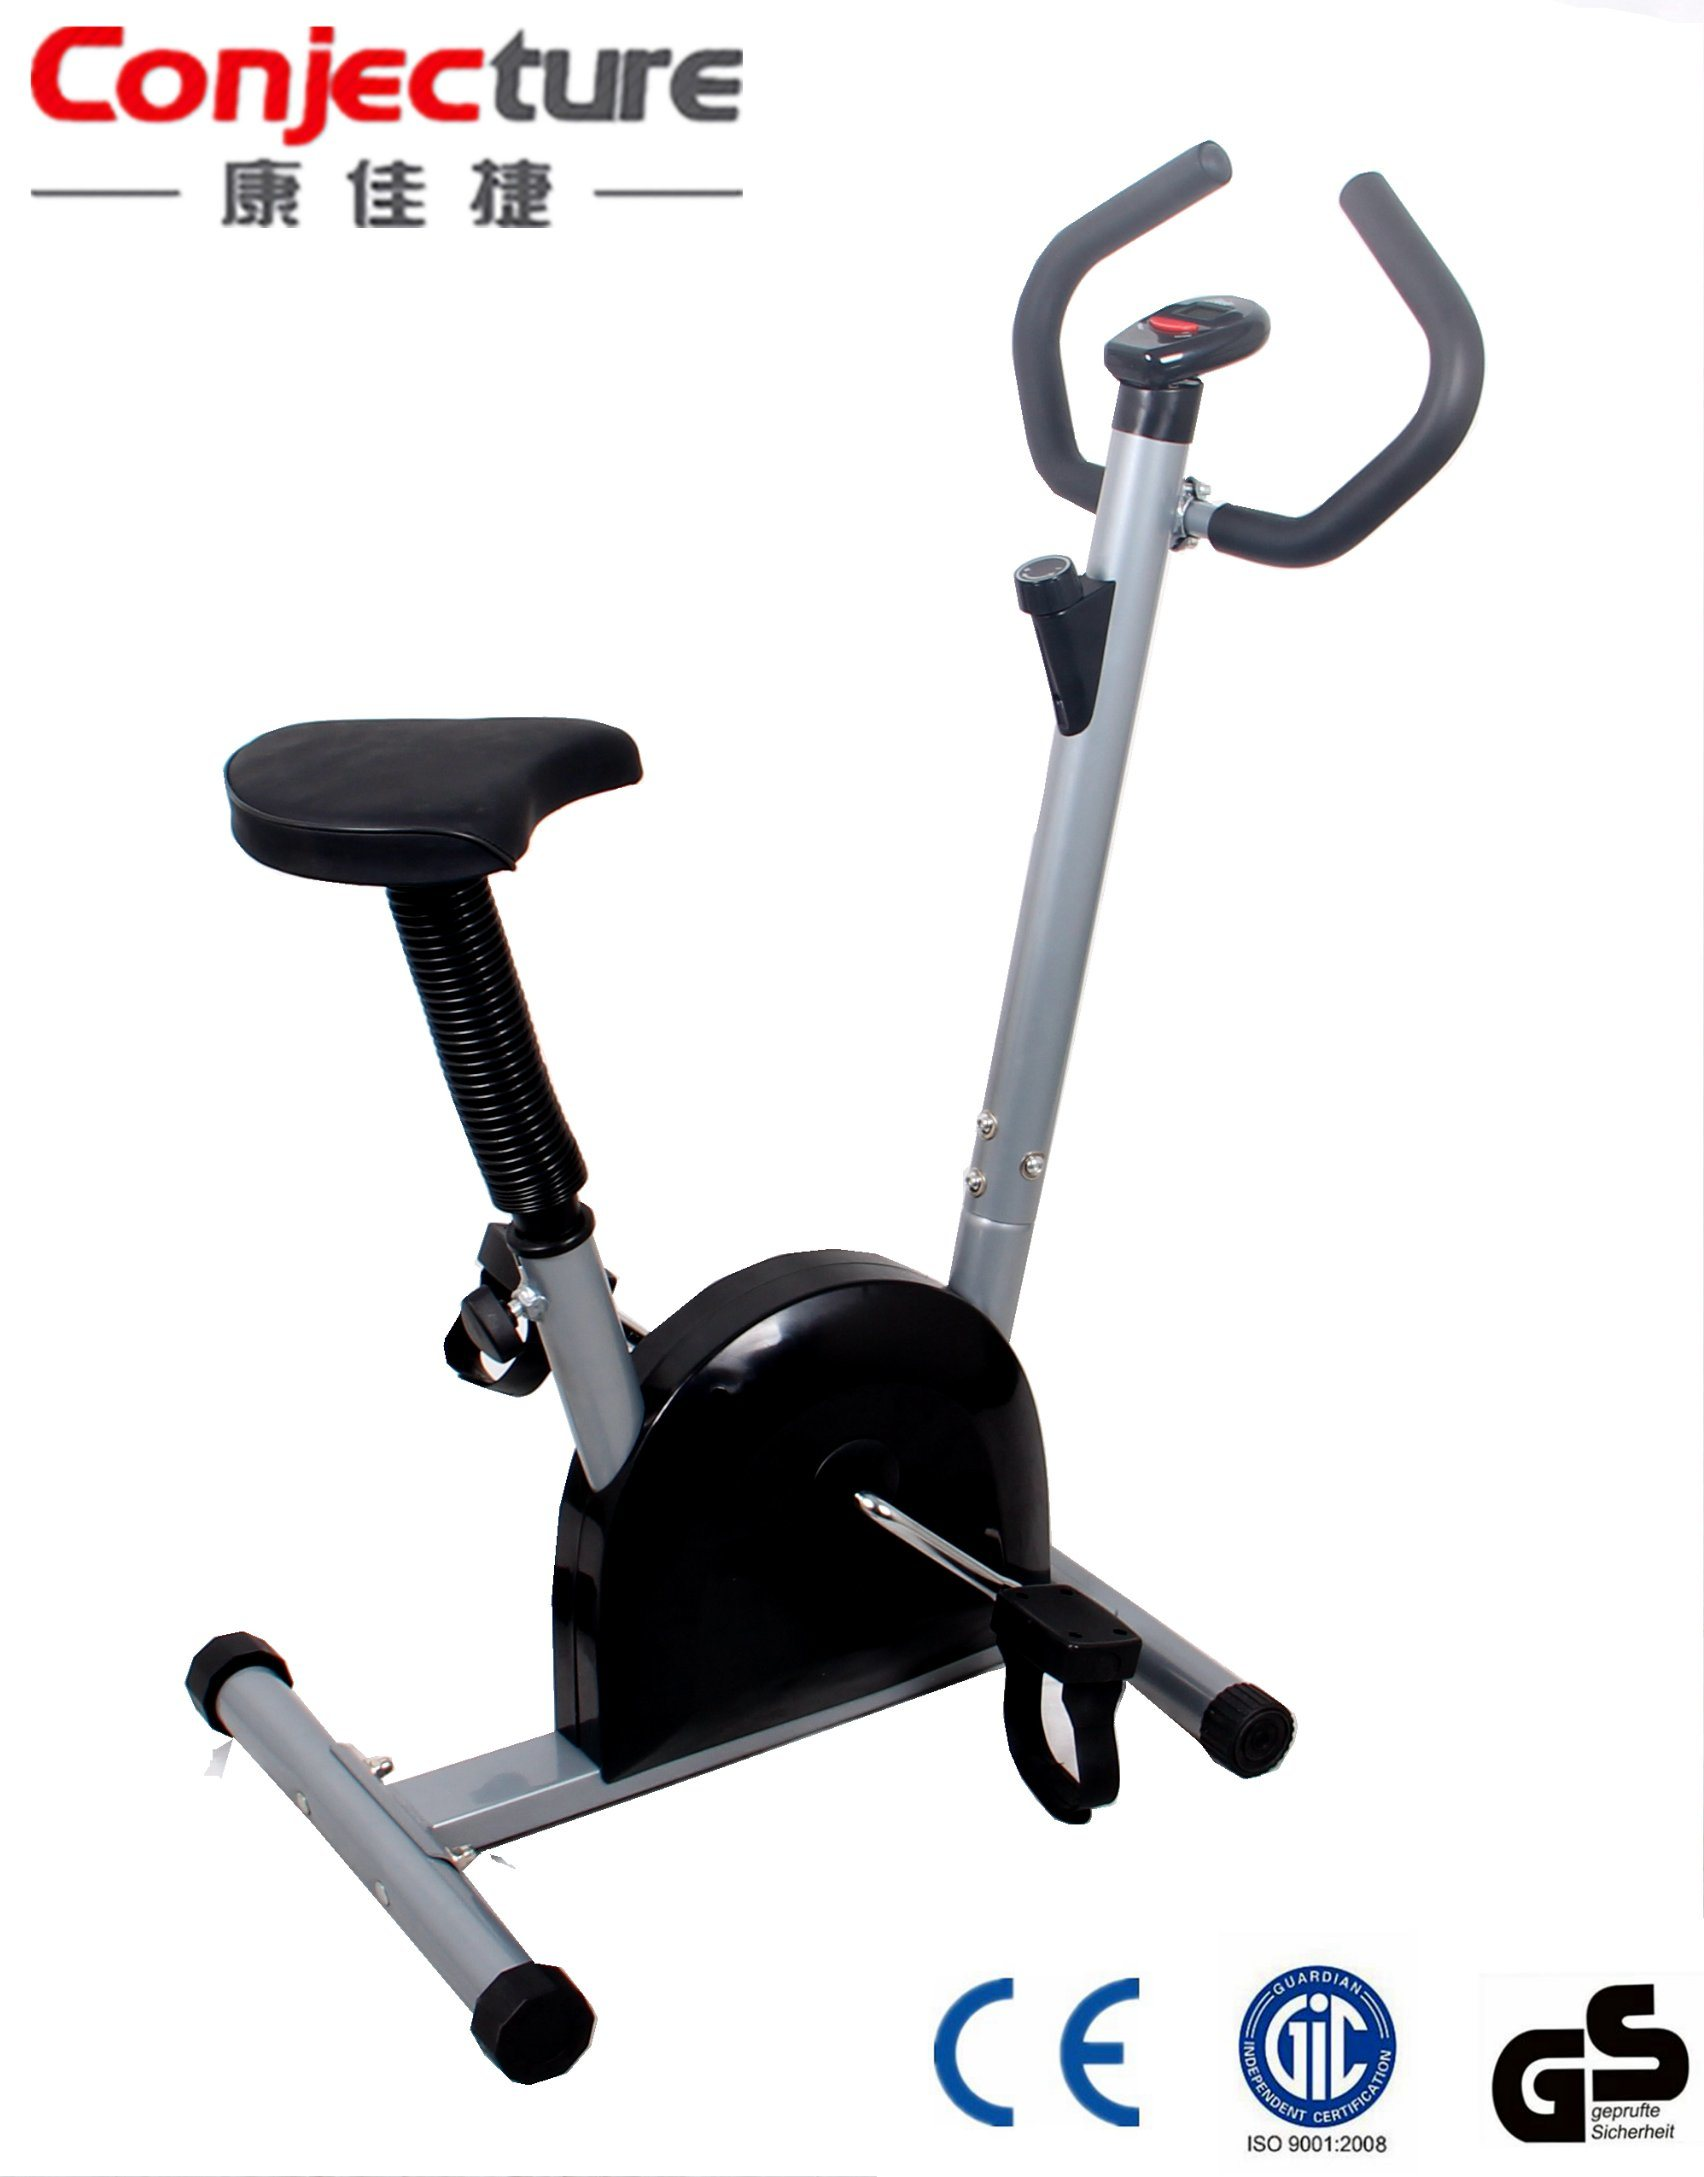 2016 New Model Hot Selling Home Fit Bike/Fitness Exercise Equipment